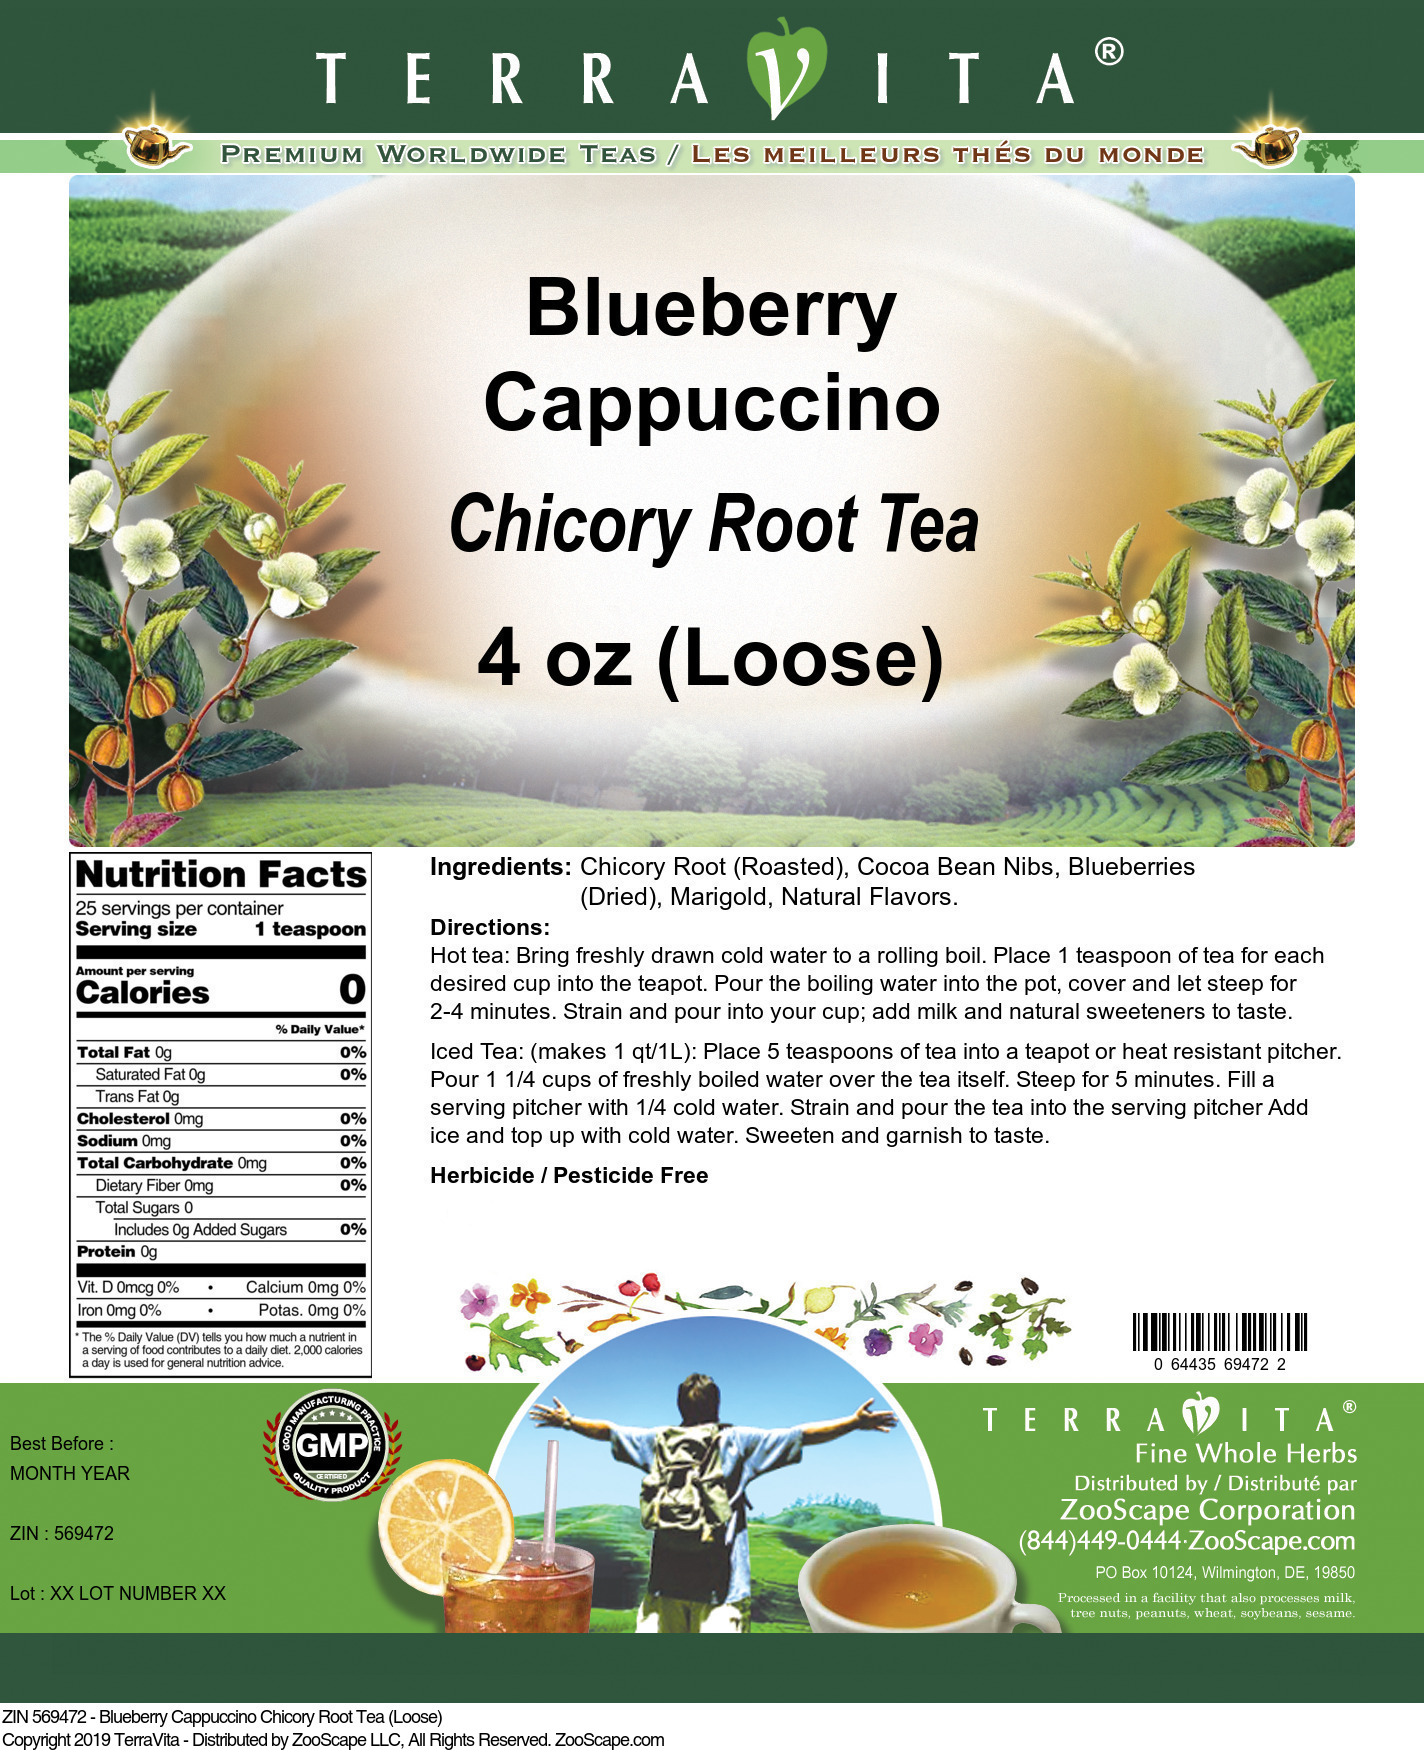 Blueberry Cappuccino Chicory Root Tea (Loose)